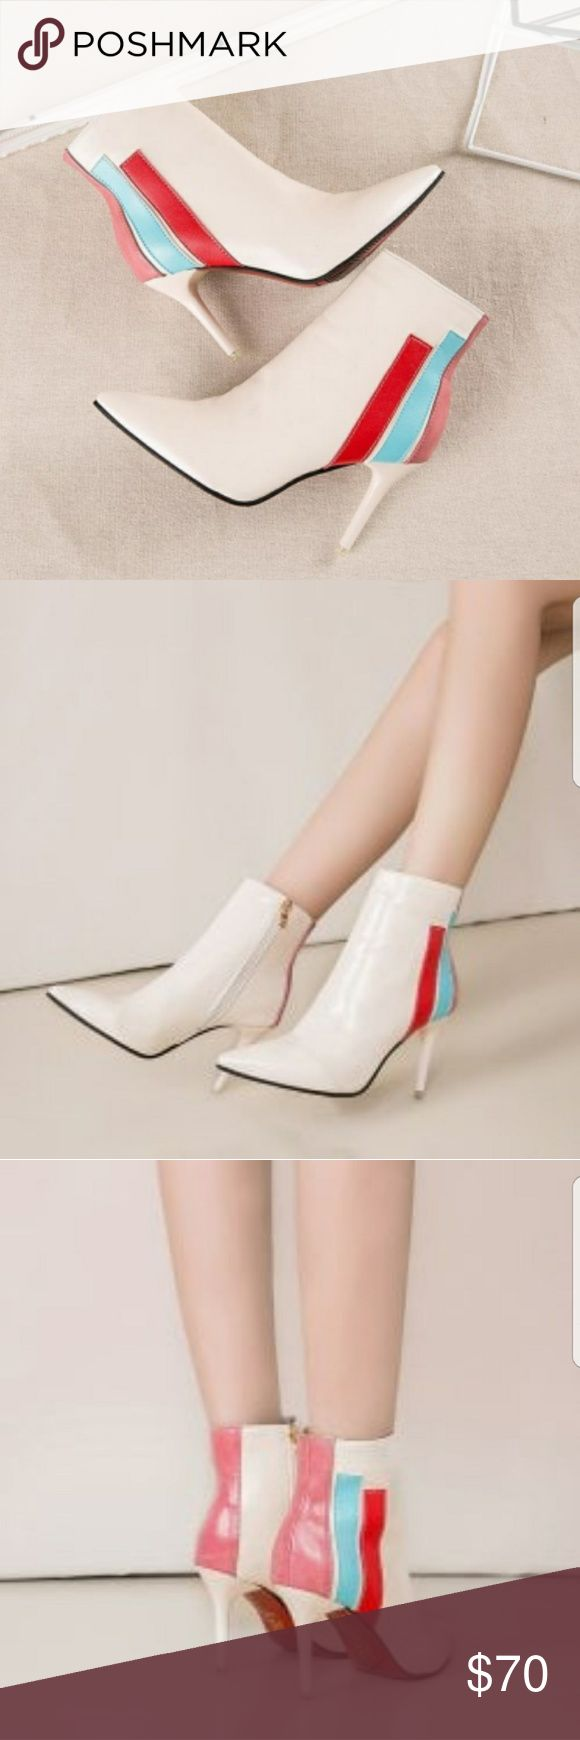 Leather short tube color high heel boot WOMEN'S FINE POINT LEATHER SHORT TUBE COLOR HIGH HEEL BOOTS  - RETAIL:$120  - SIZE: 38(8),39(9)  - COLOR: WHITE  - TOE STYLE:CLOSED TOE  - TOE SHAPE: POINTED  - HEEL SHAPE: STILETTO HEEL   - CONDITION: BRAND NEW IN BOX NO DEFECTS   - POSITIVE FEEDBACK IS GREATLY APPRECIATED THANK YOU. unbranded Shoes Ankle Boots & Booties